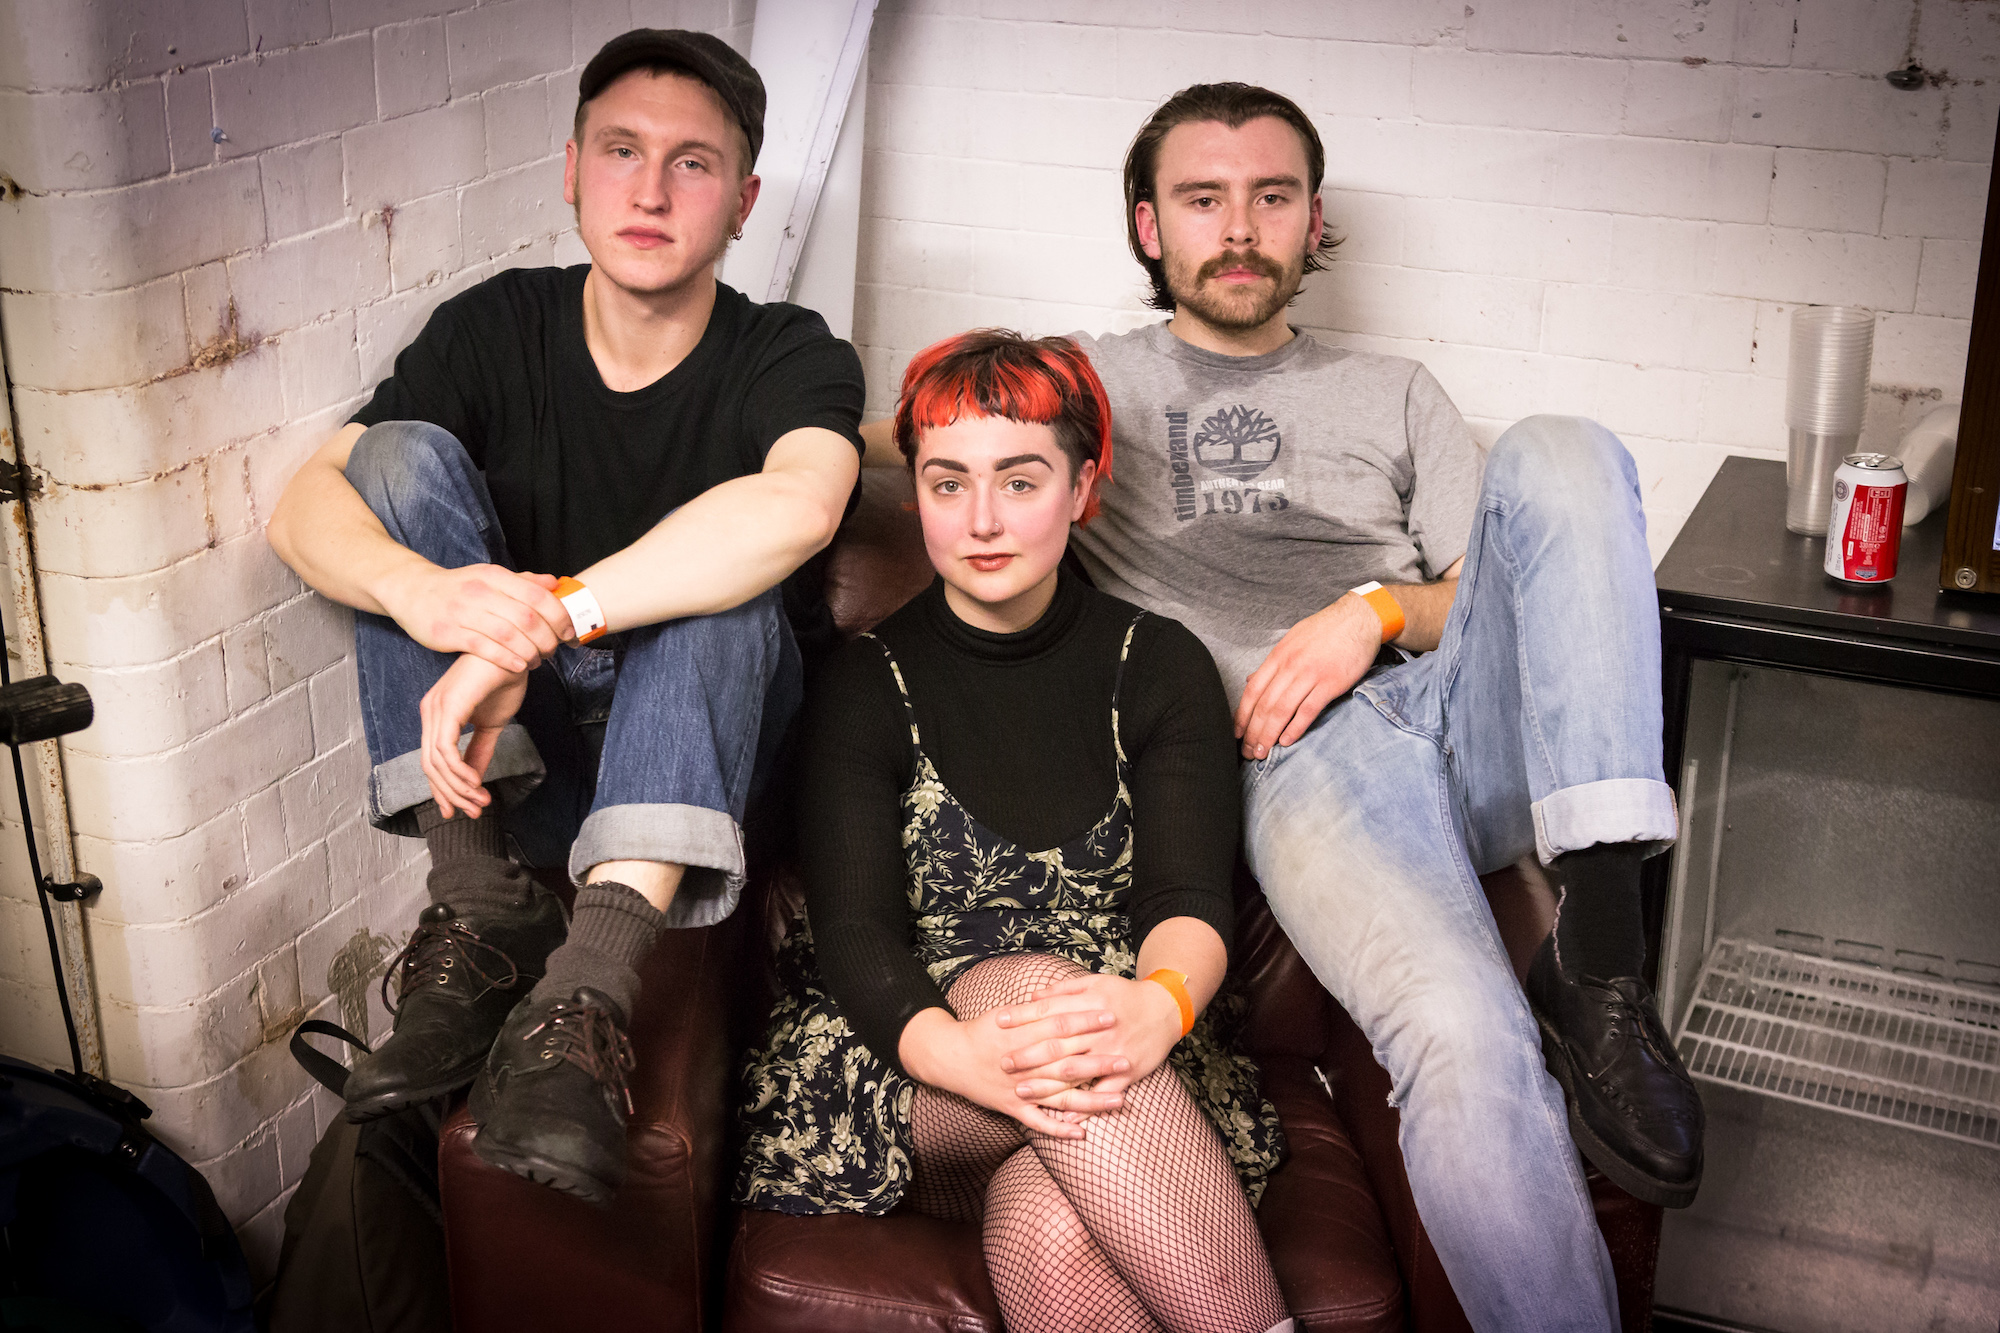 Kagoule, Manchester, October 2015